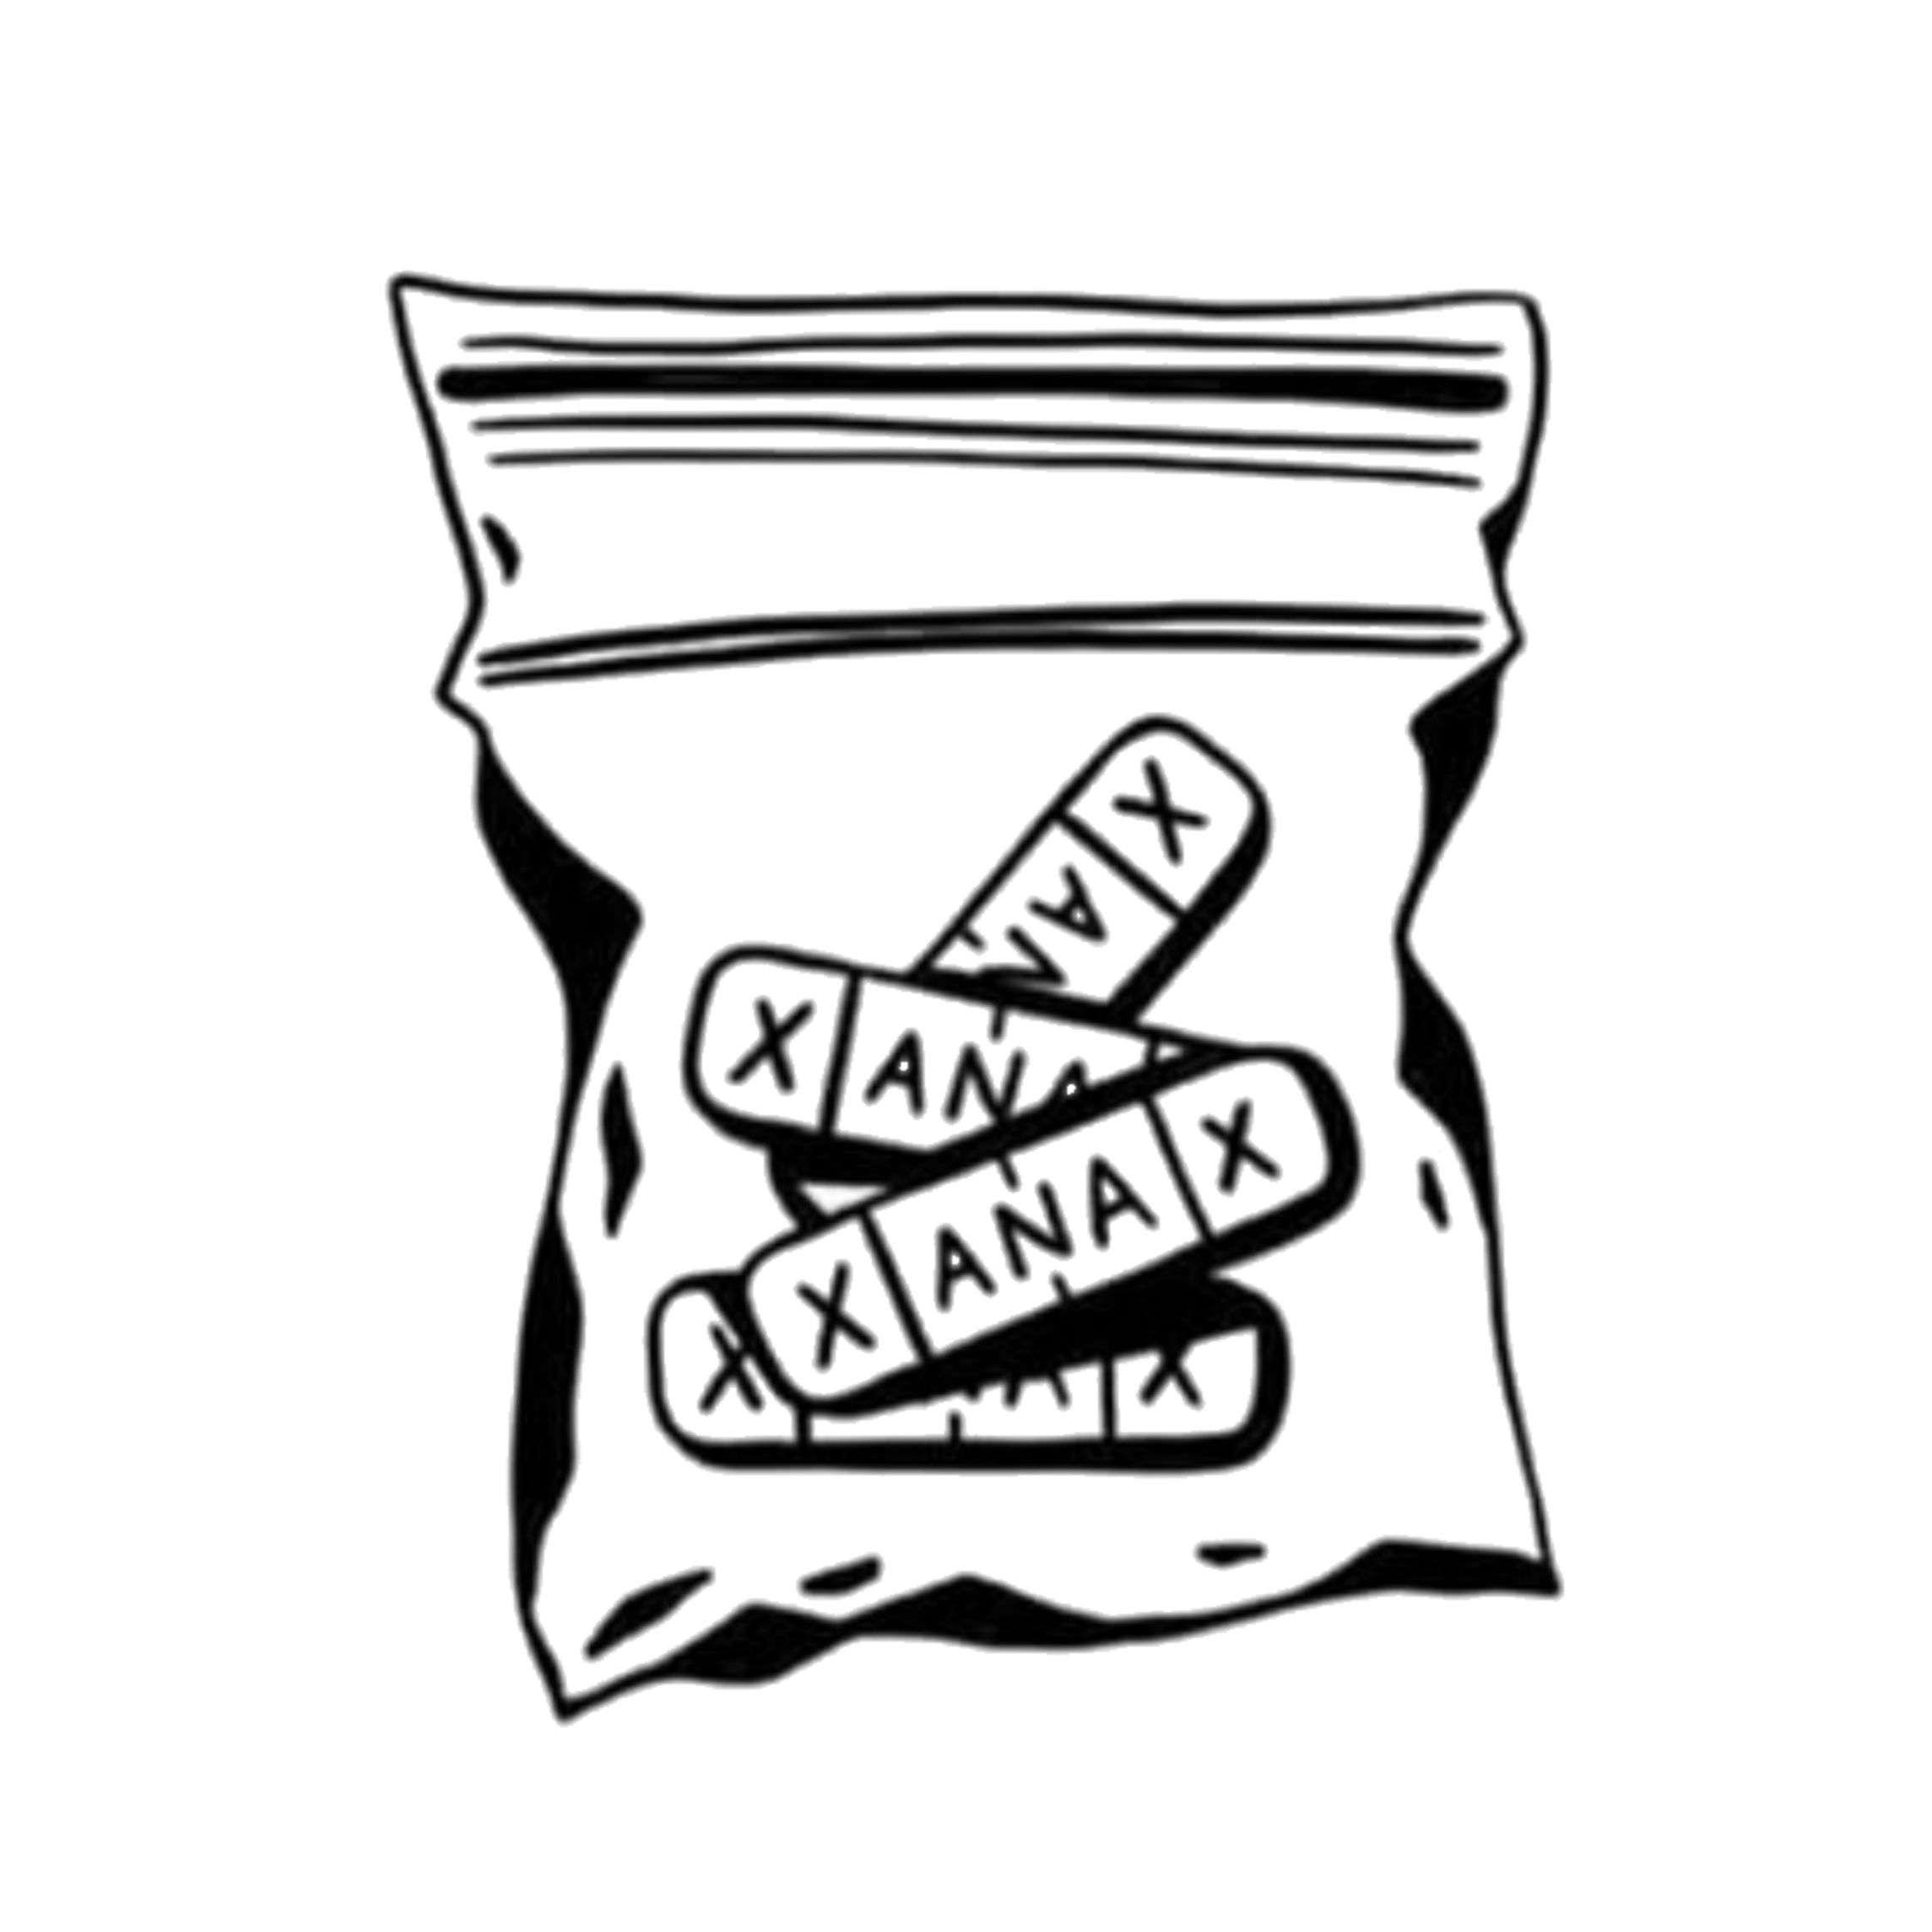 Xanax Aesthetic Tattoo Flash Sticker By Liana Monroe I dont want to have a panic attack while getting tattooed. xanax aesthetic tattoo flash sticker by